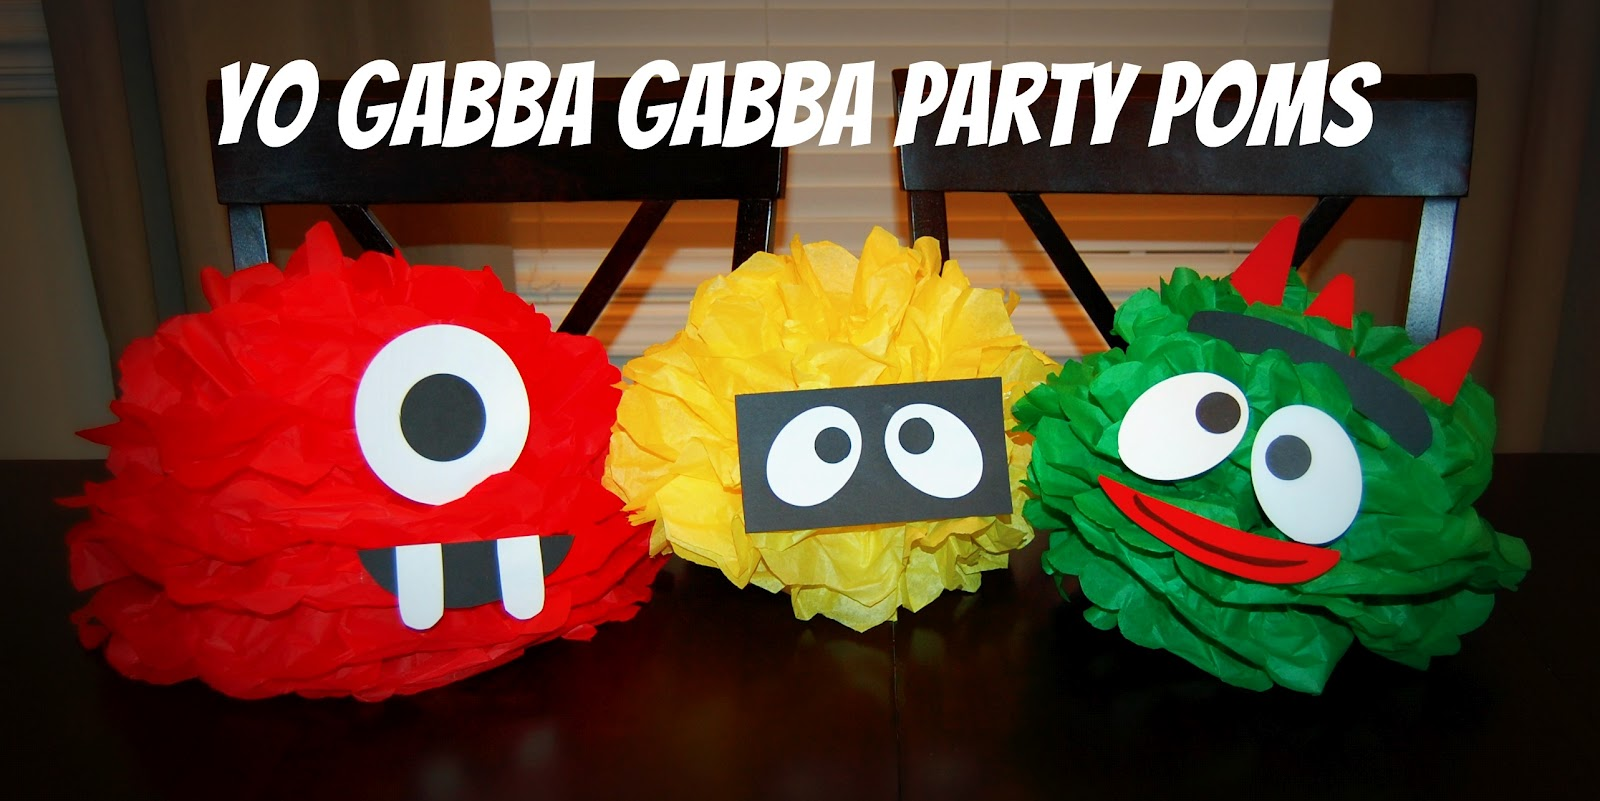 Ygg Party Poms